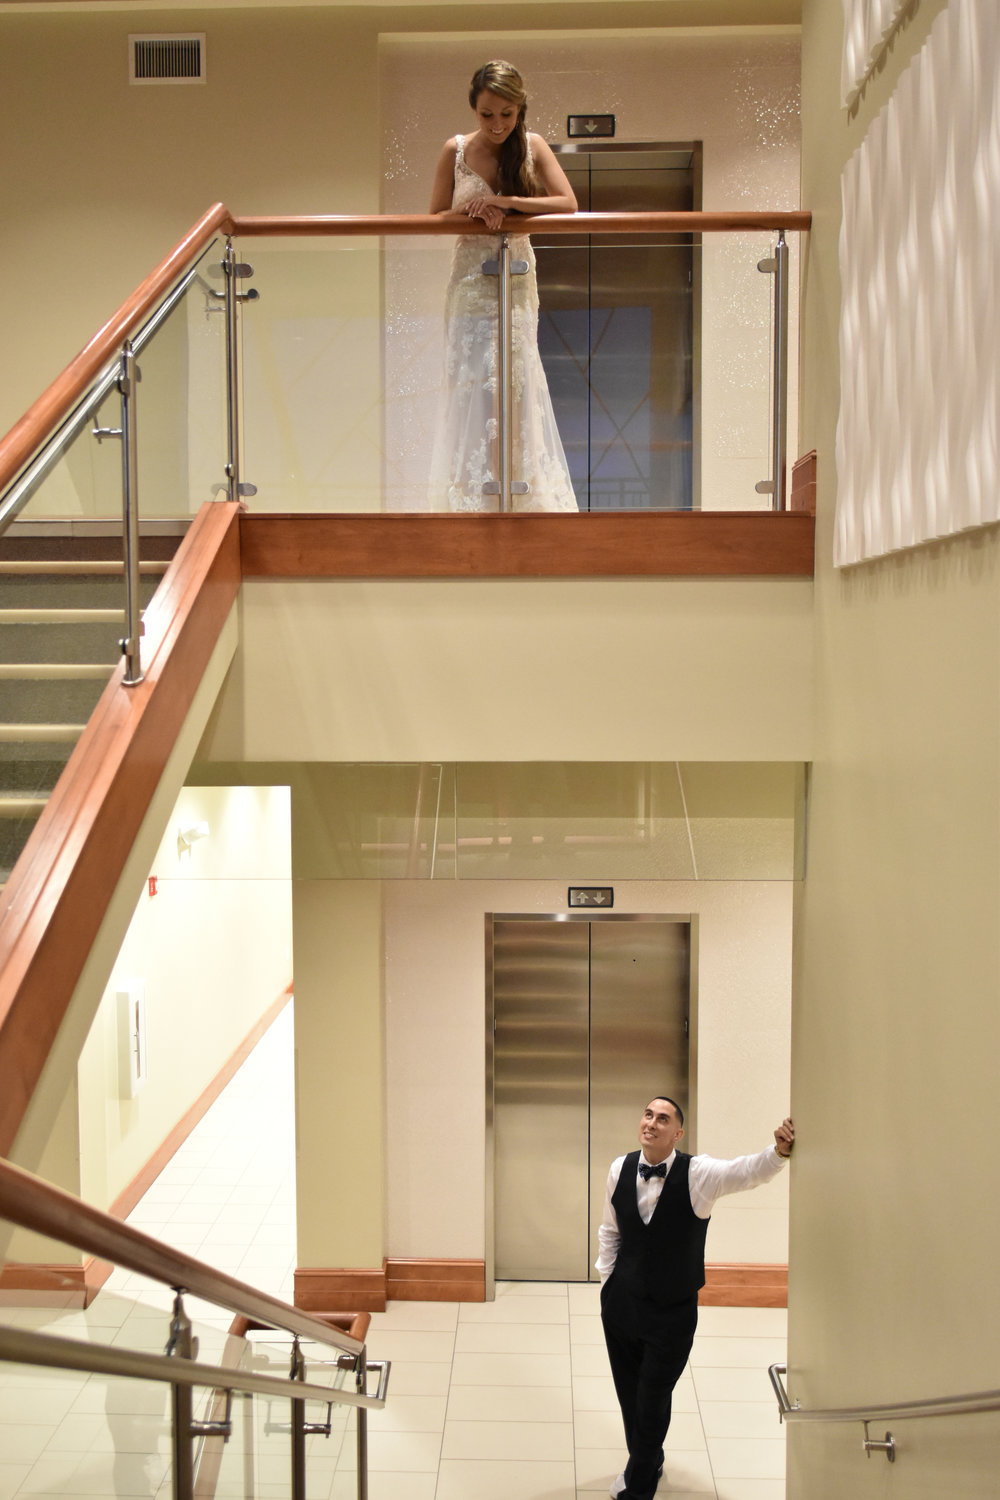 Stairs - Fun Shot. Took image of Bride looking down on husband on the 2nd and 3rd floors of the Terraces on Sir Tyler in Wilmington, NC.